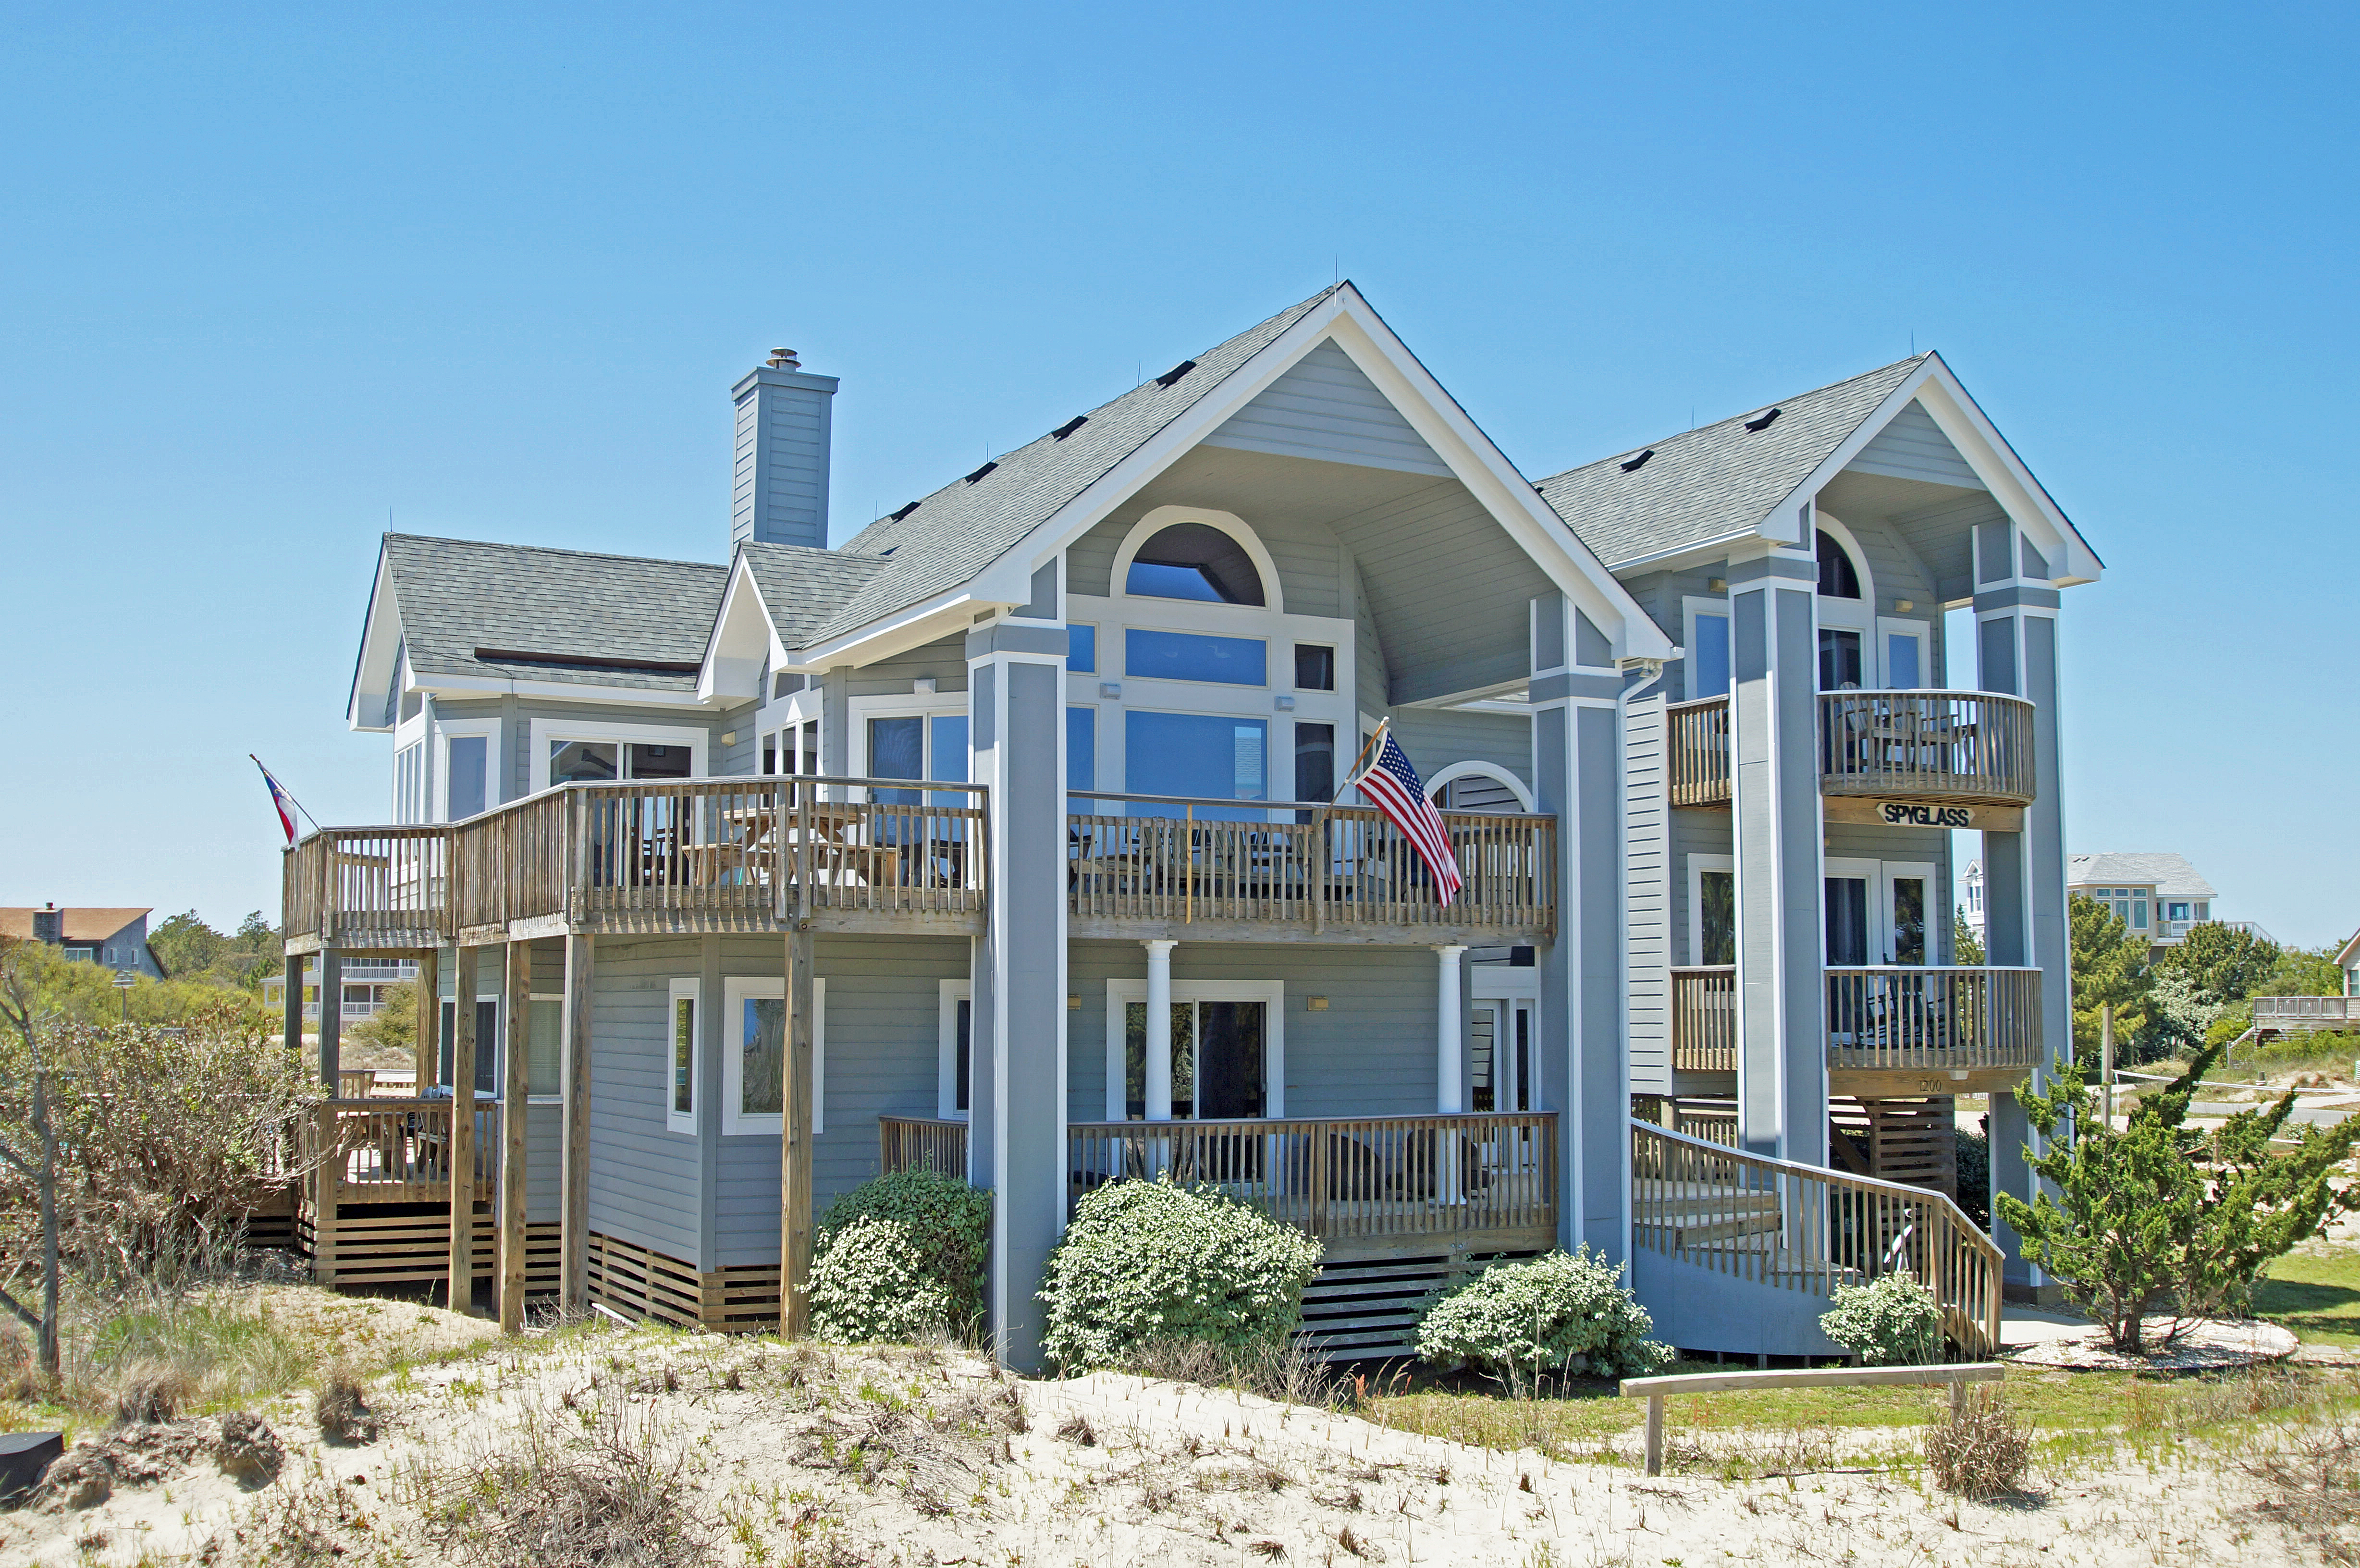 Groovy Oh1200 Spyglass Carolina Shores Vacation Rentals Download Free Architecture Designs Ferenbritishbridgeorg